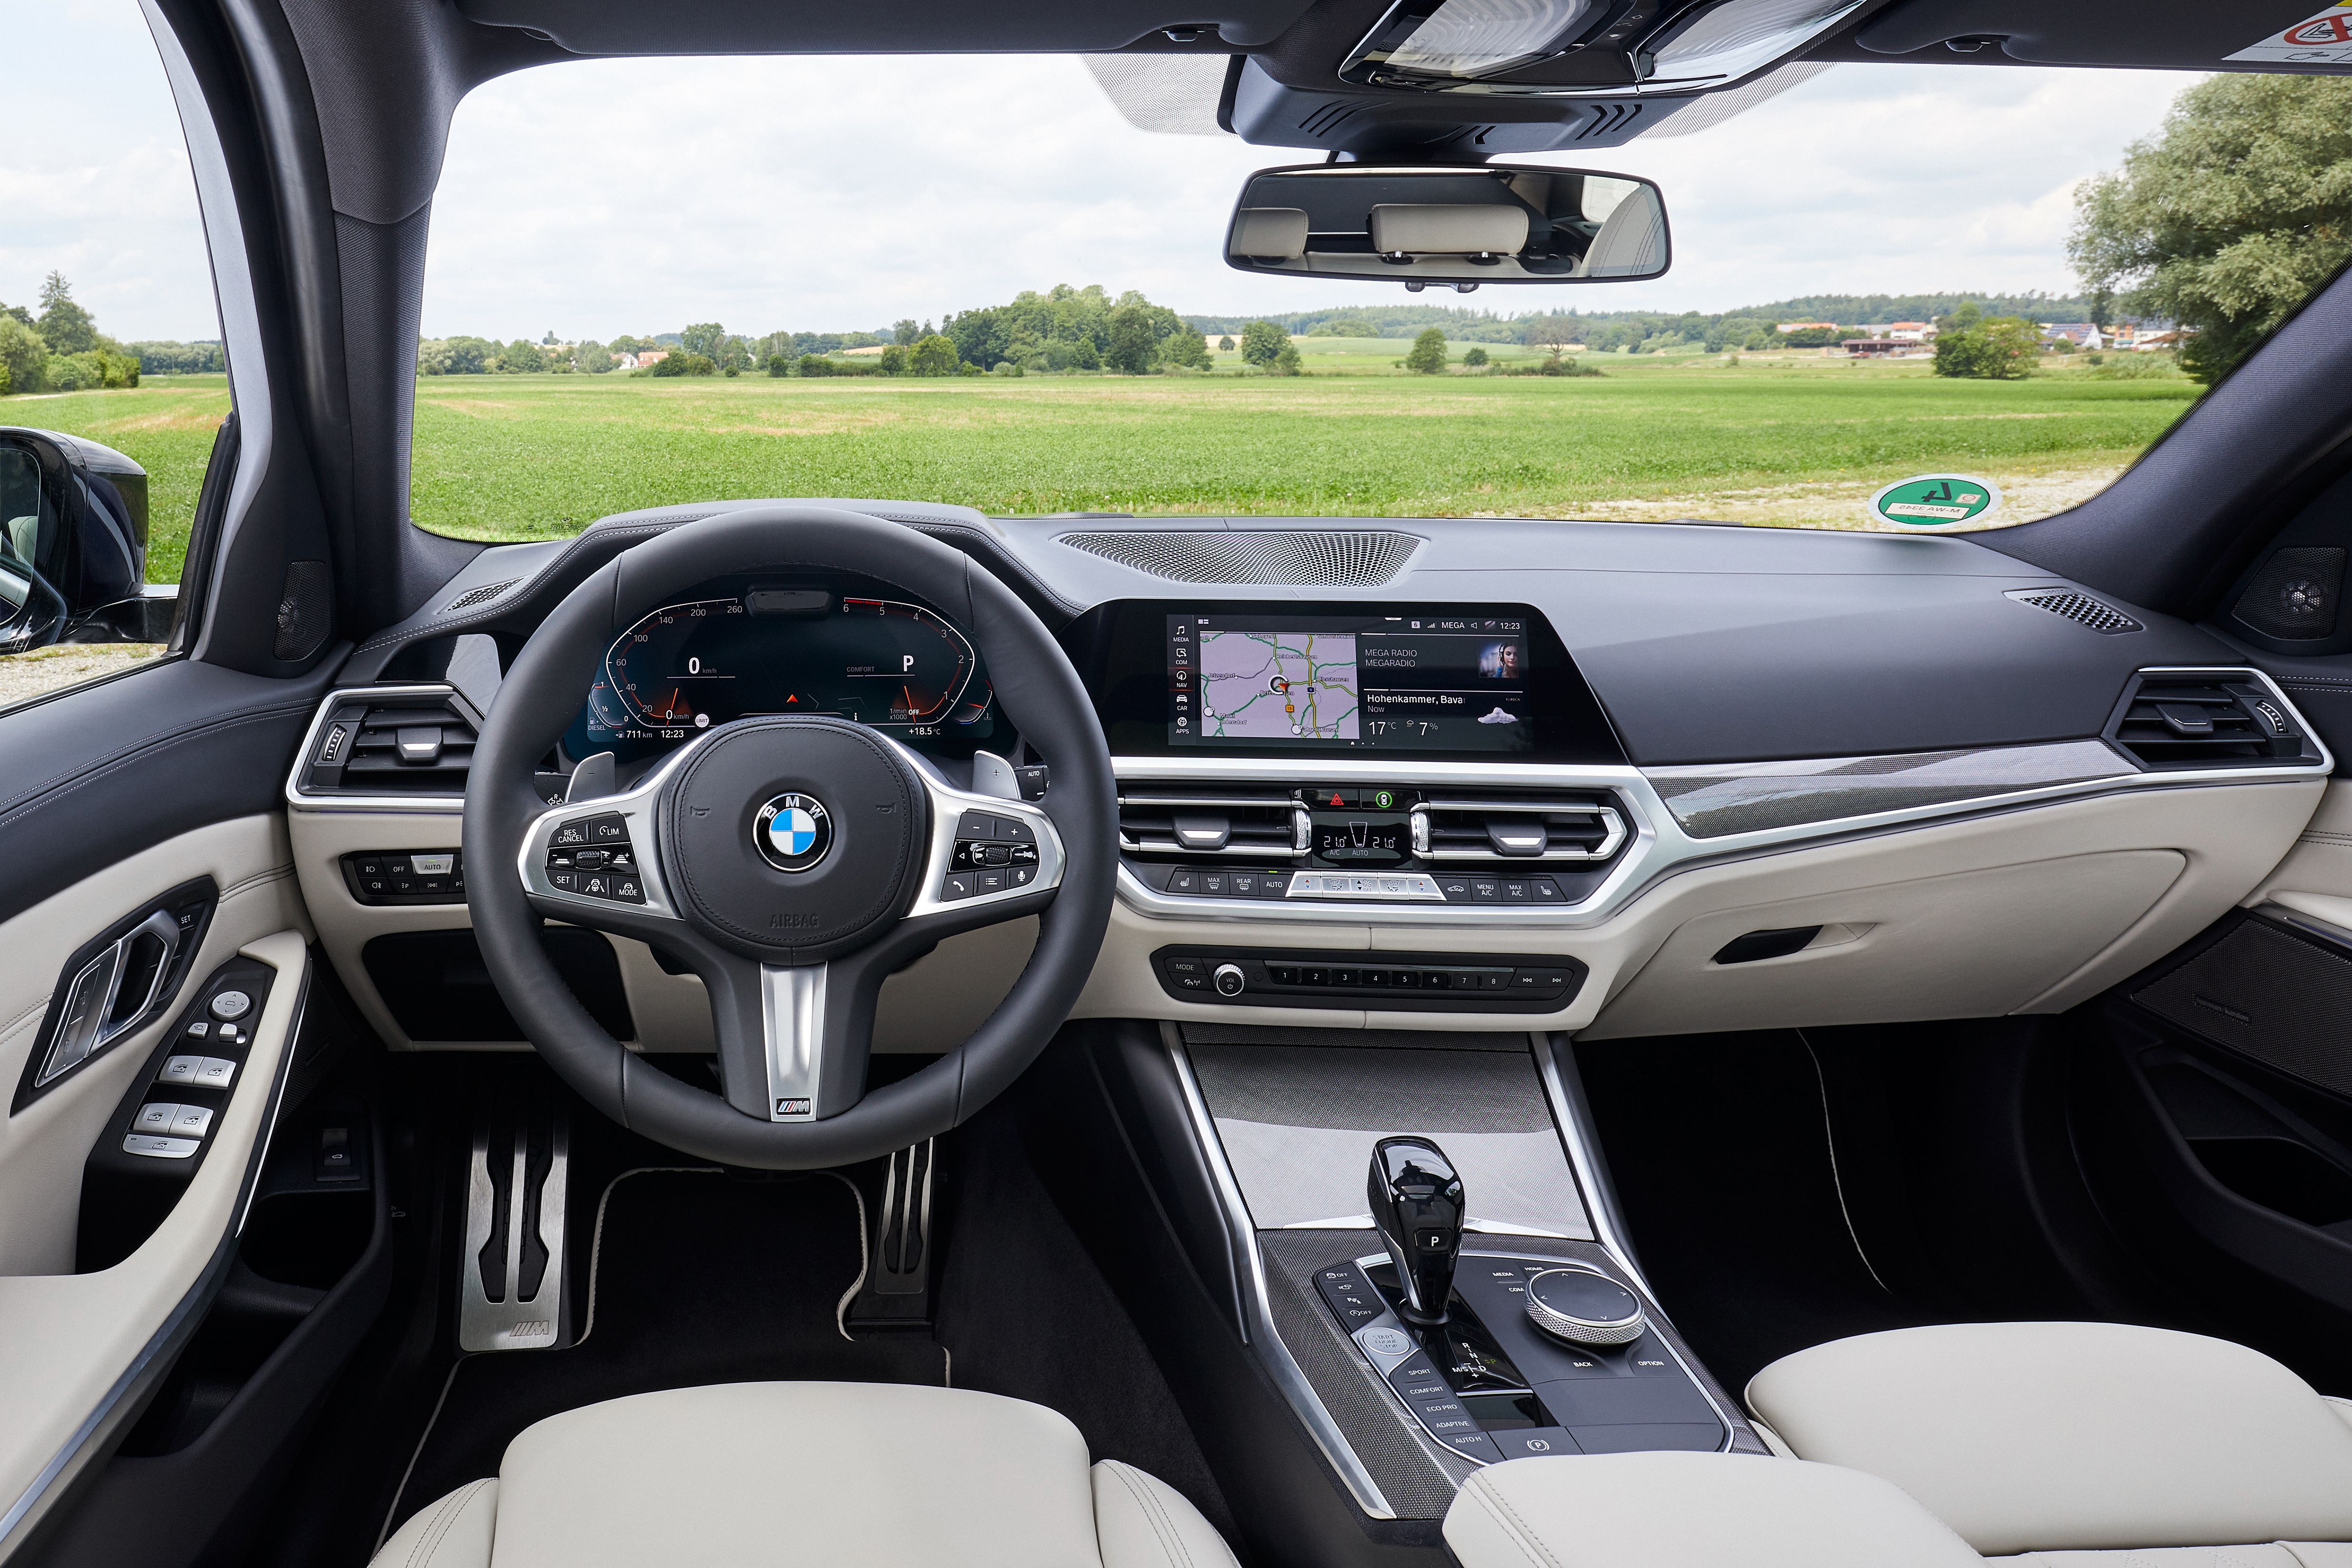 The interior of the 3 Series is well made and intuitively designed